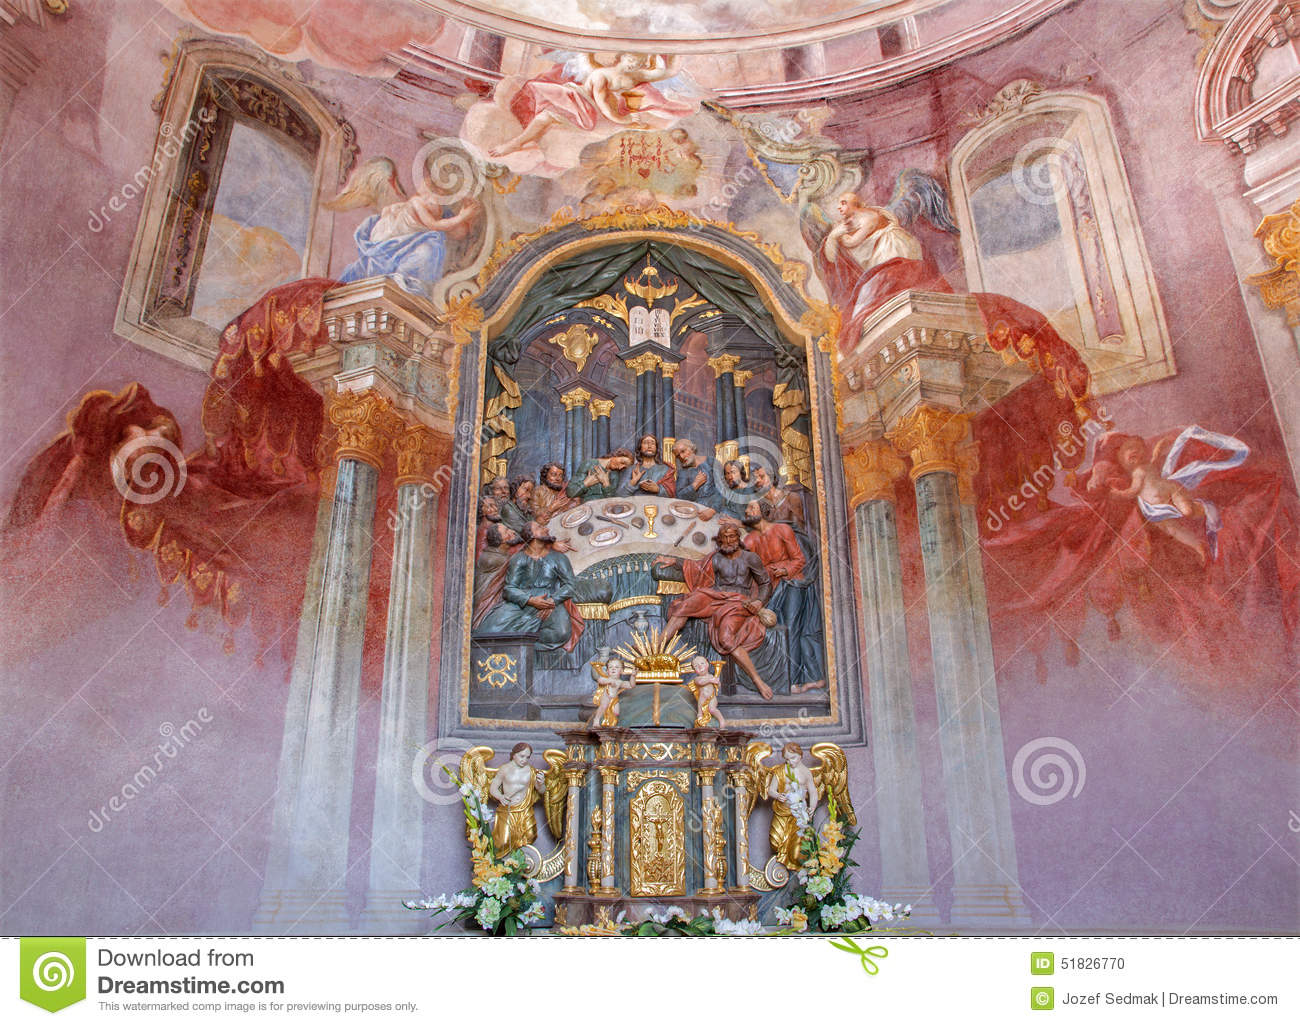 Banska Stiavnica - fresco and altar in the lower church of baroque calvary by Anton Schmidt from years 1745